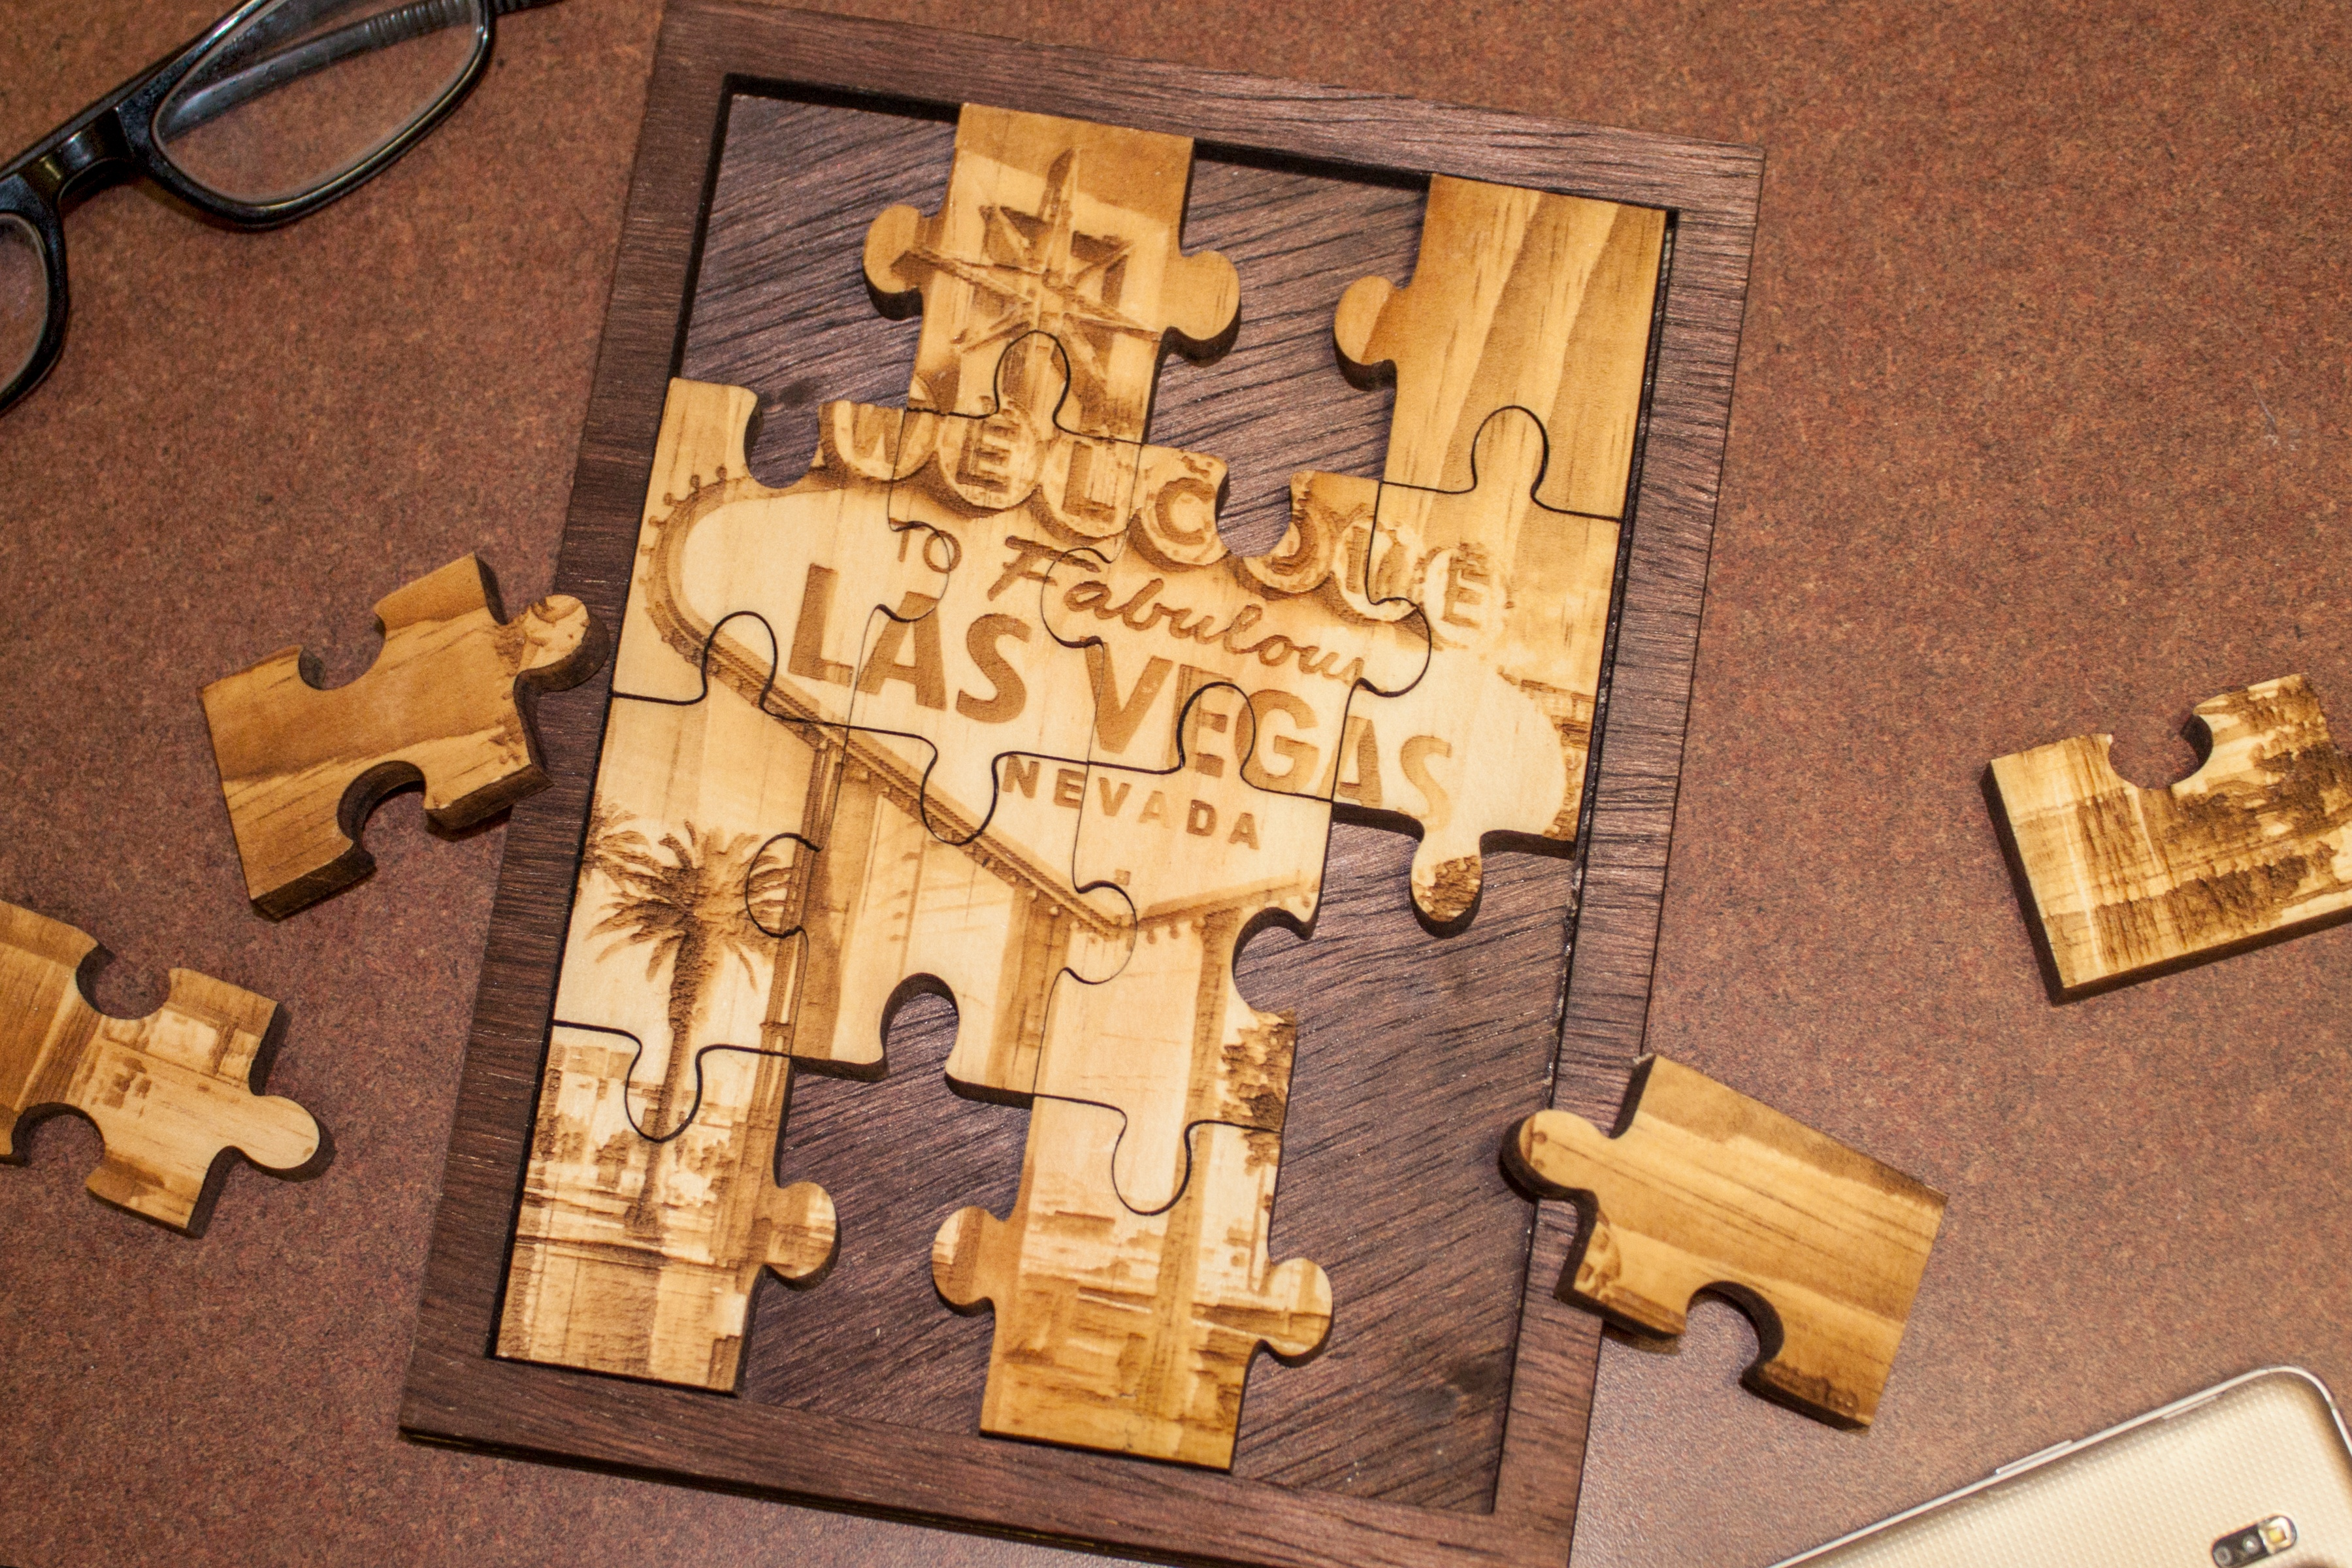 Lesson 3 Jigsaw Puzzle